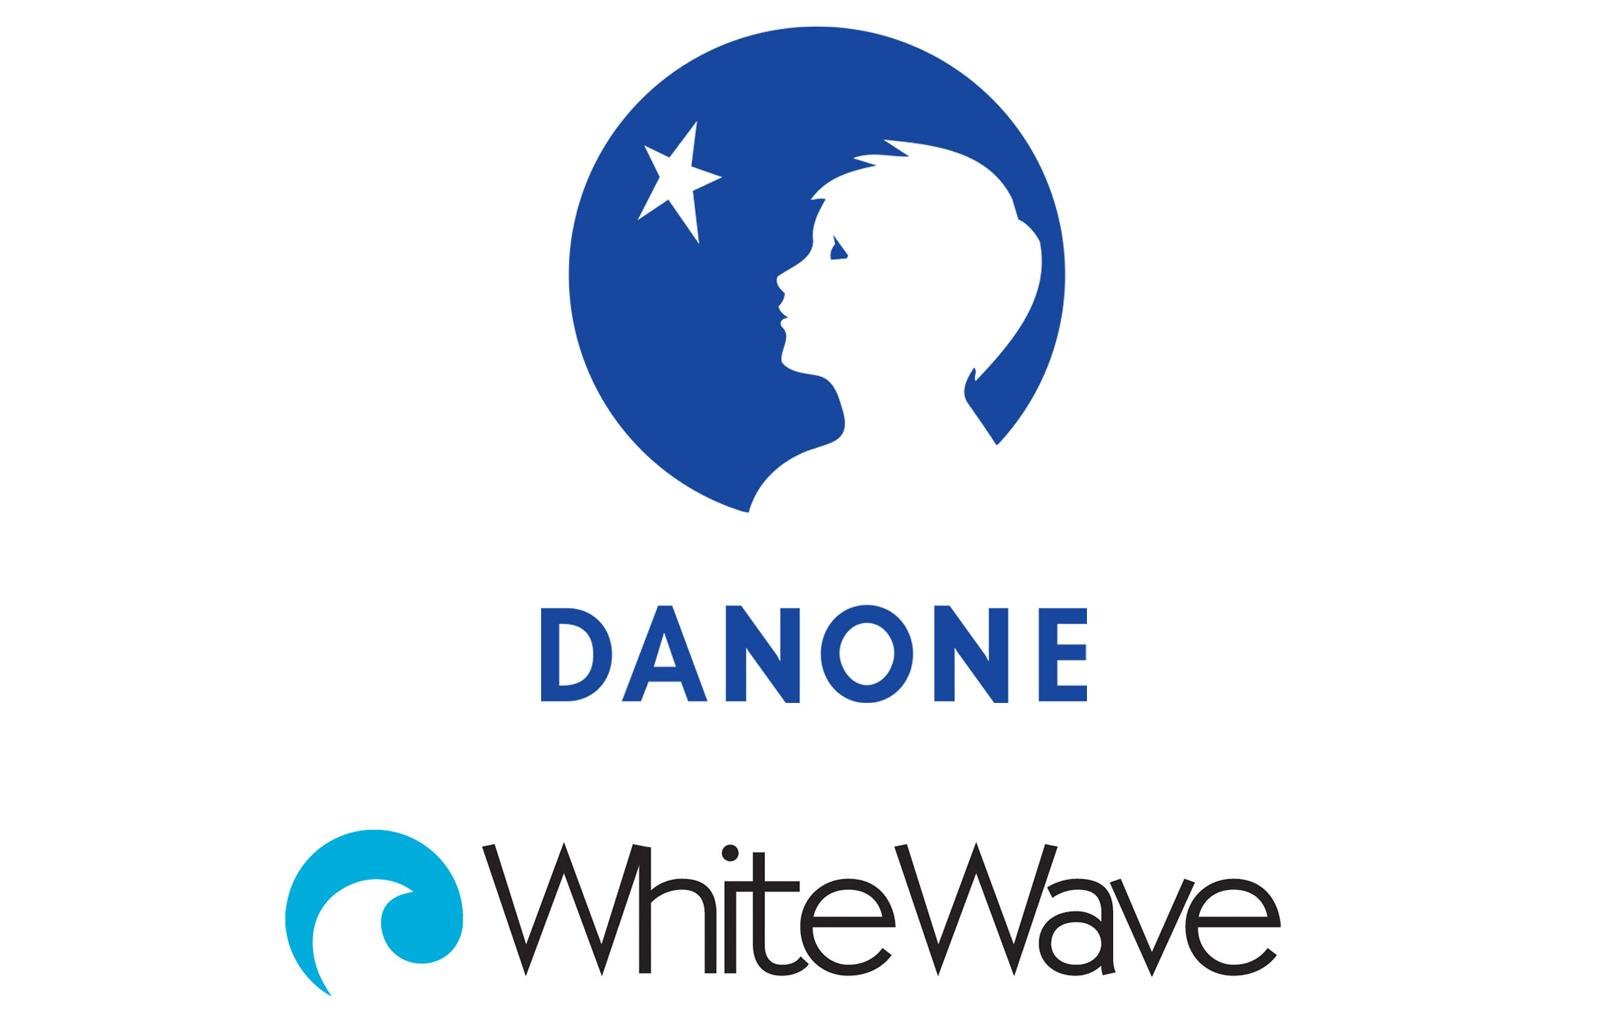 danonne strategic paper This paper analyses the branding strategy of a leading french food producer in the fast growing chinese market the company, danone group (dg), has long been operating internationally with.